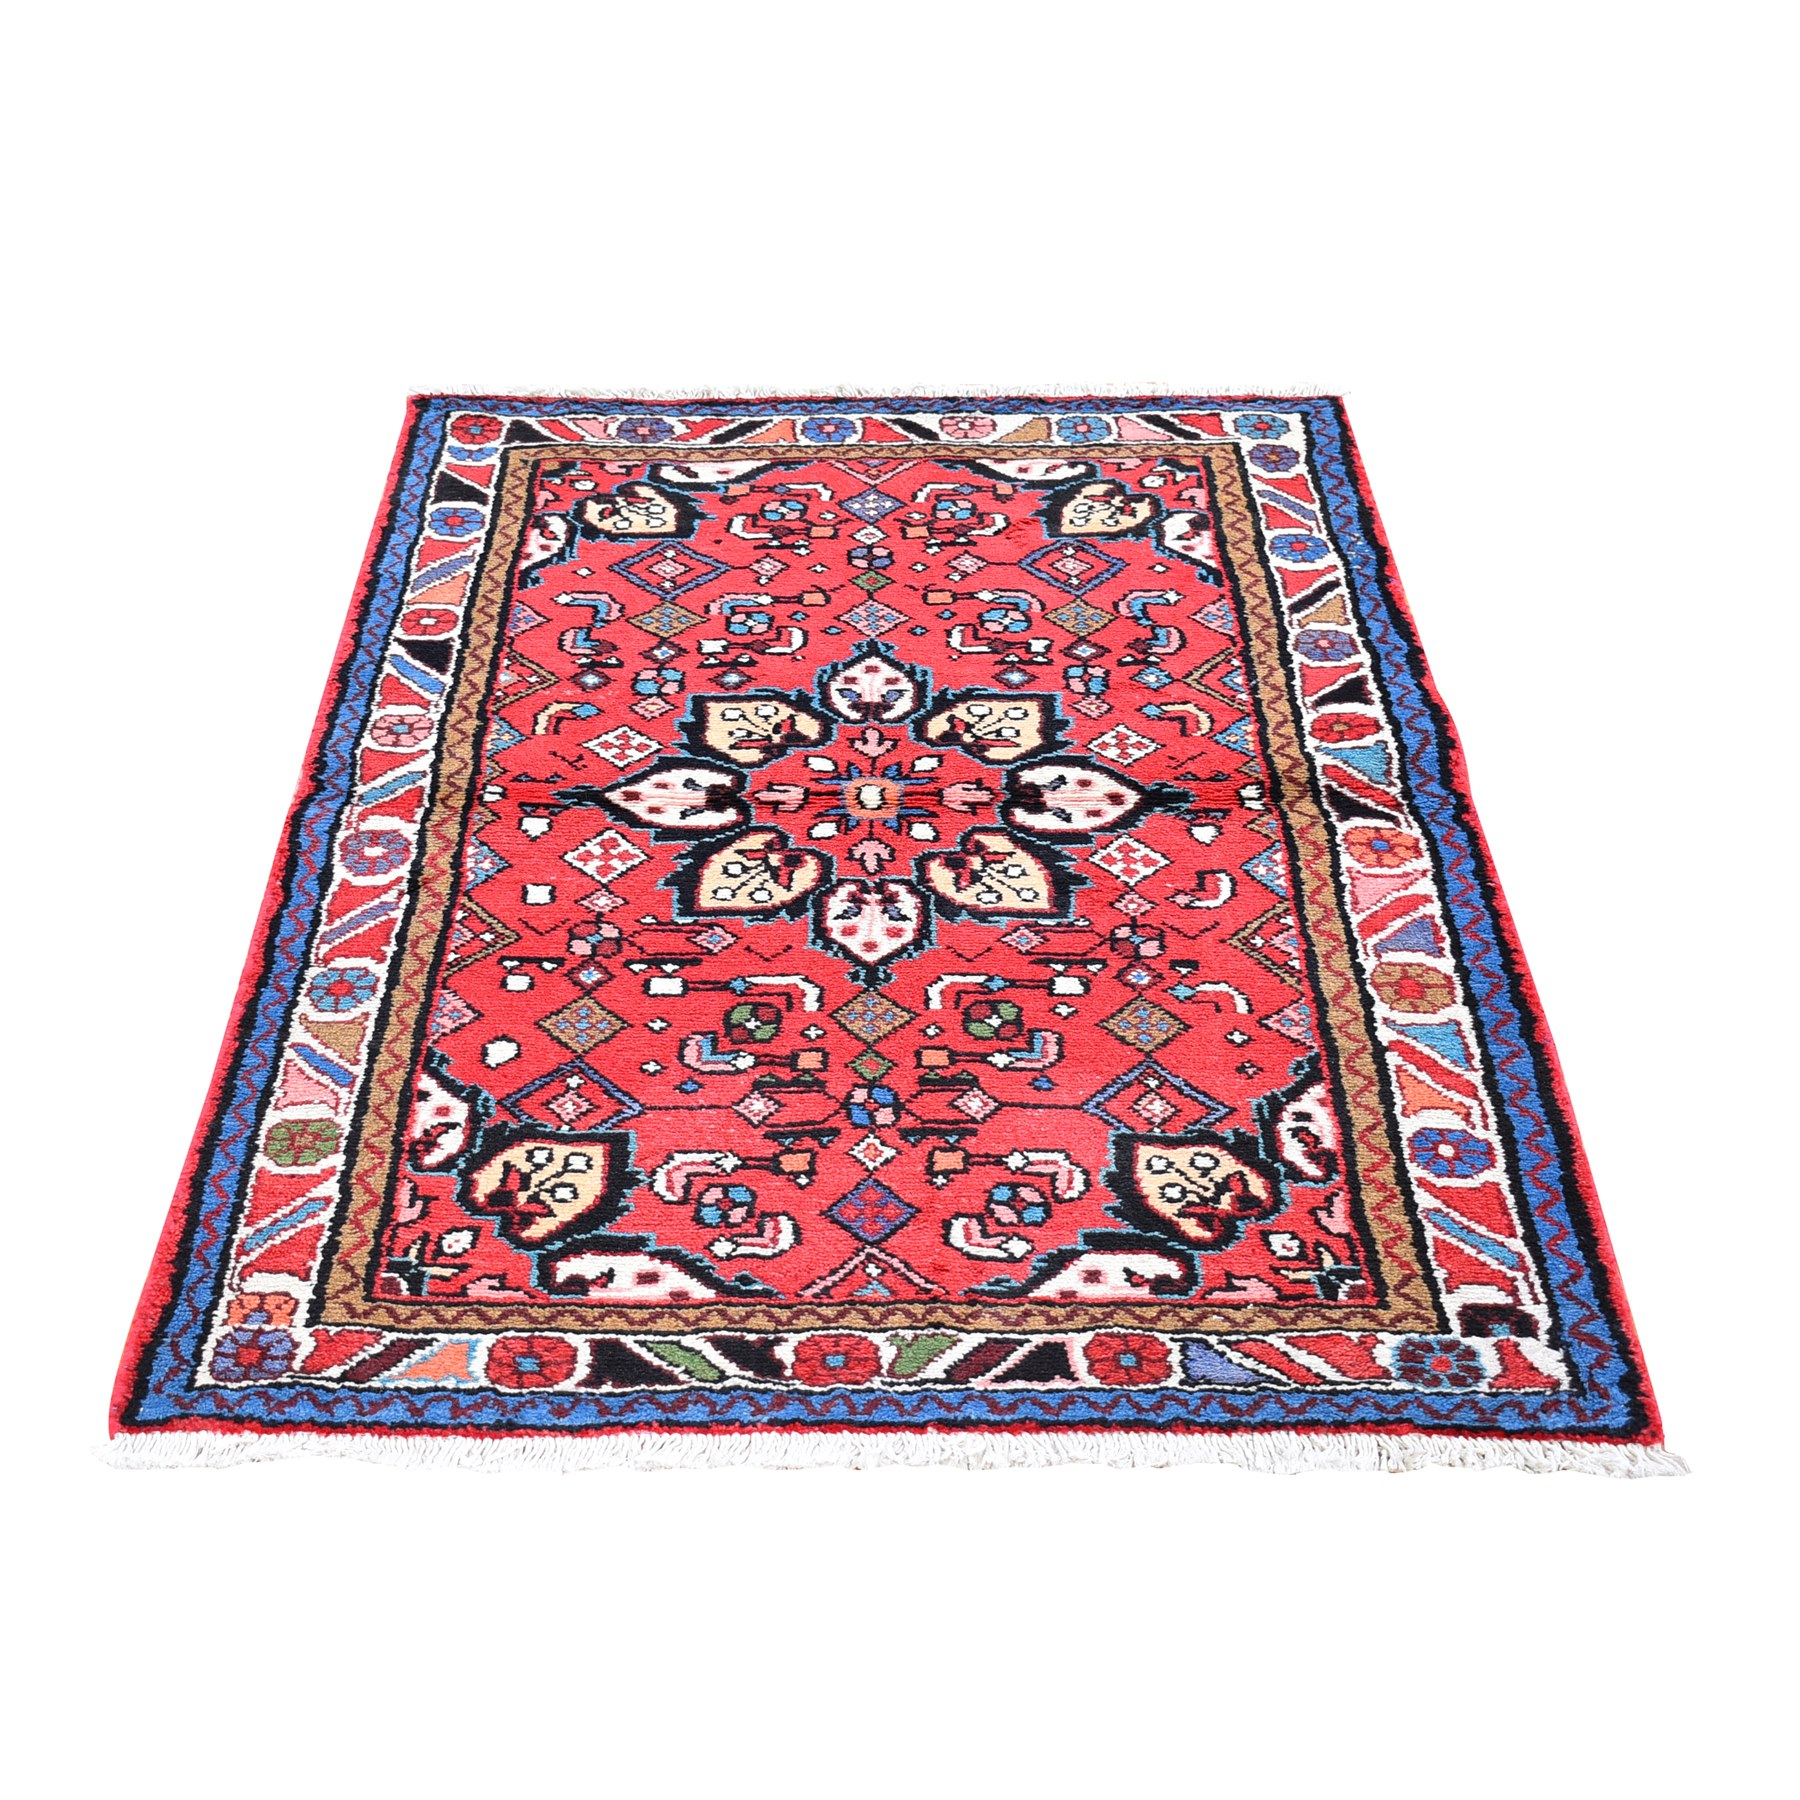 "3'3""x5' Red New Persian Hamadan Flower Medallion Design Organic Wool Hand Knotted Oriental Rug"